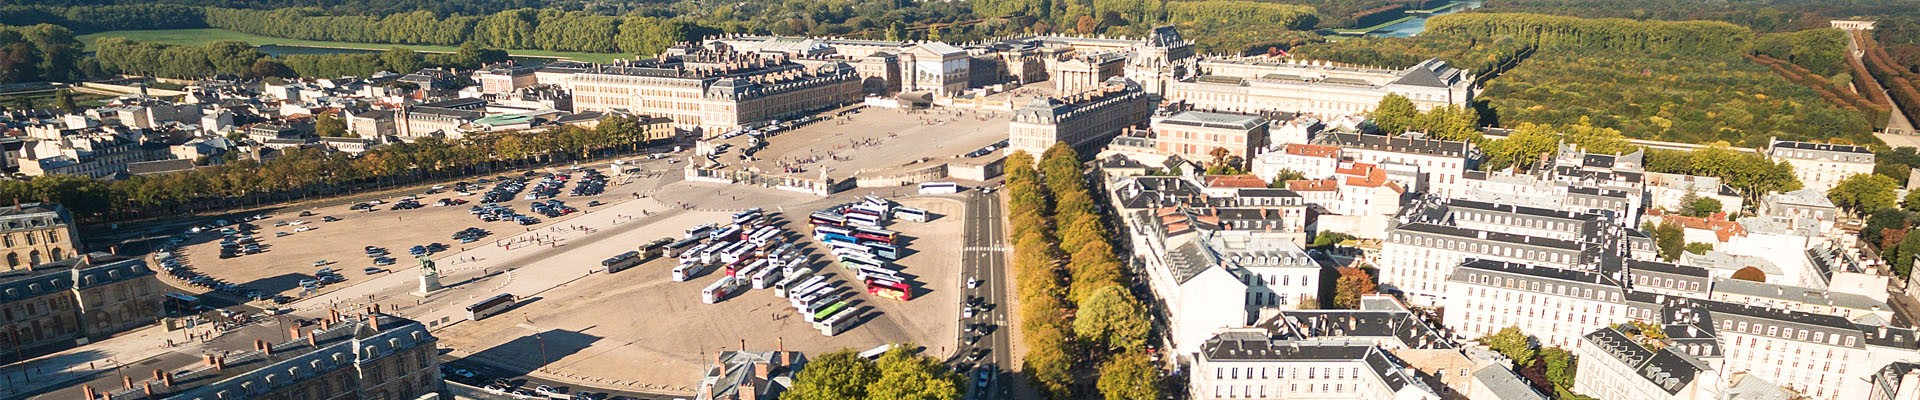 Aerial view Places d'Armes parking